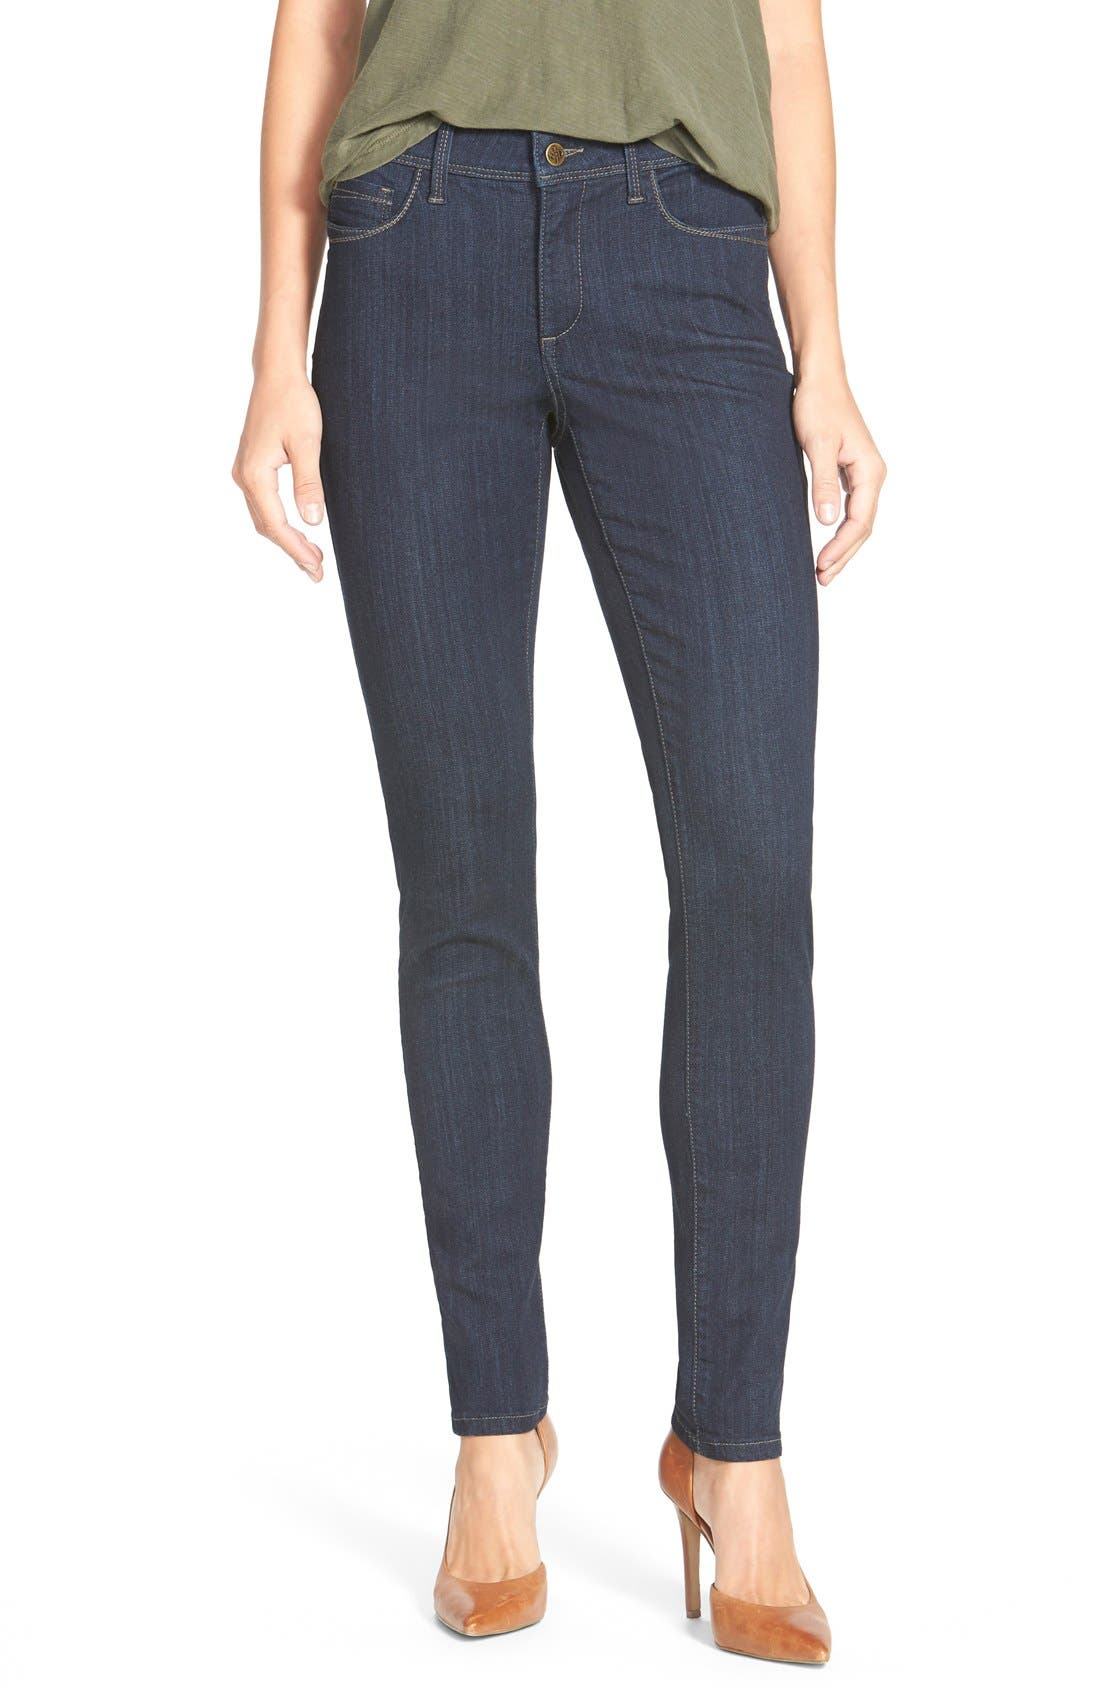 'Ami' Stretch Skinny Jeans,                         Main,                         color, Mabel Wash